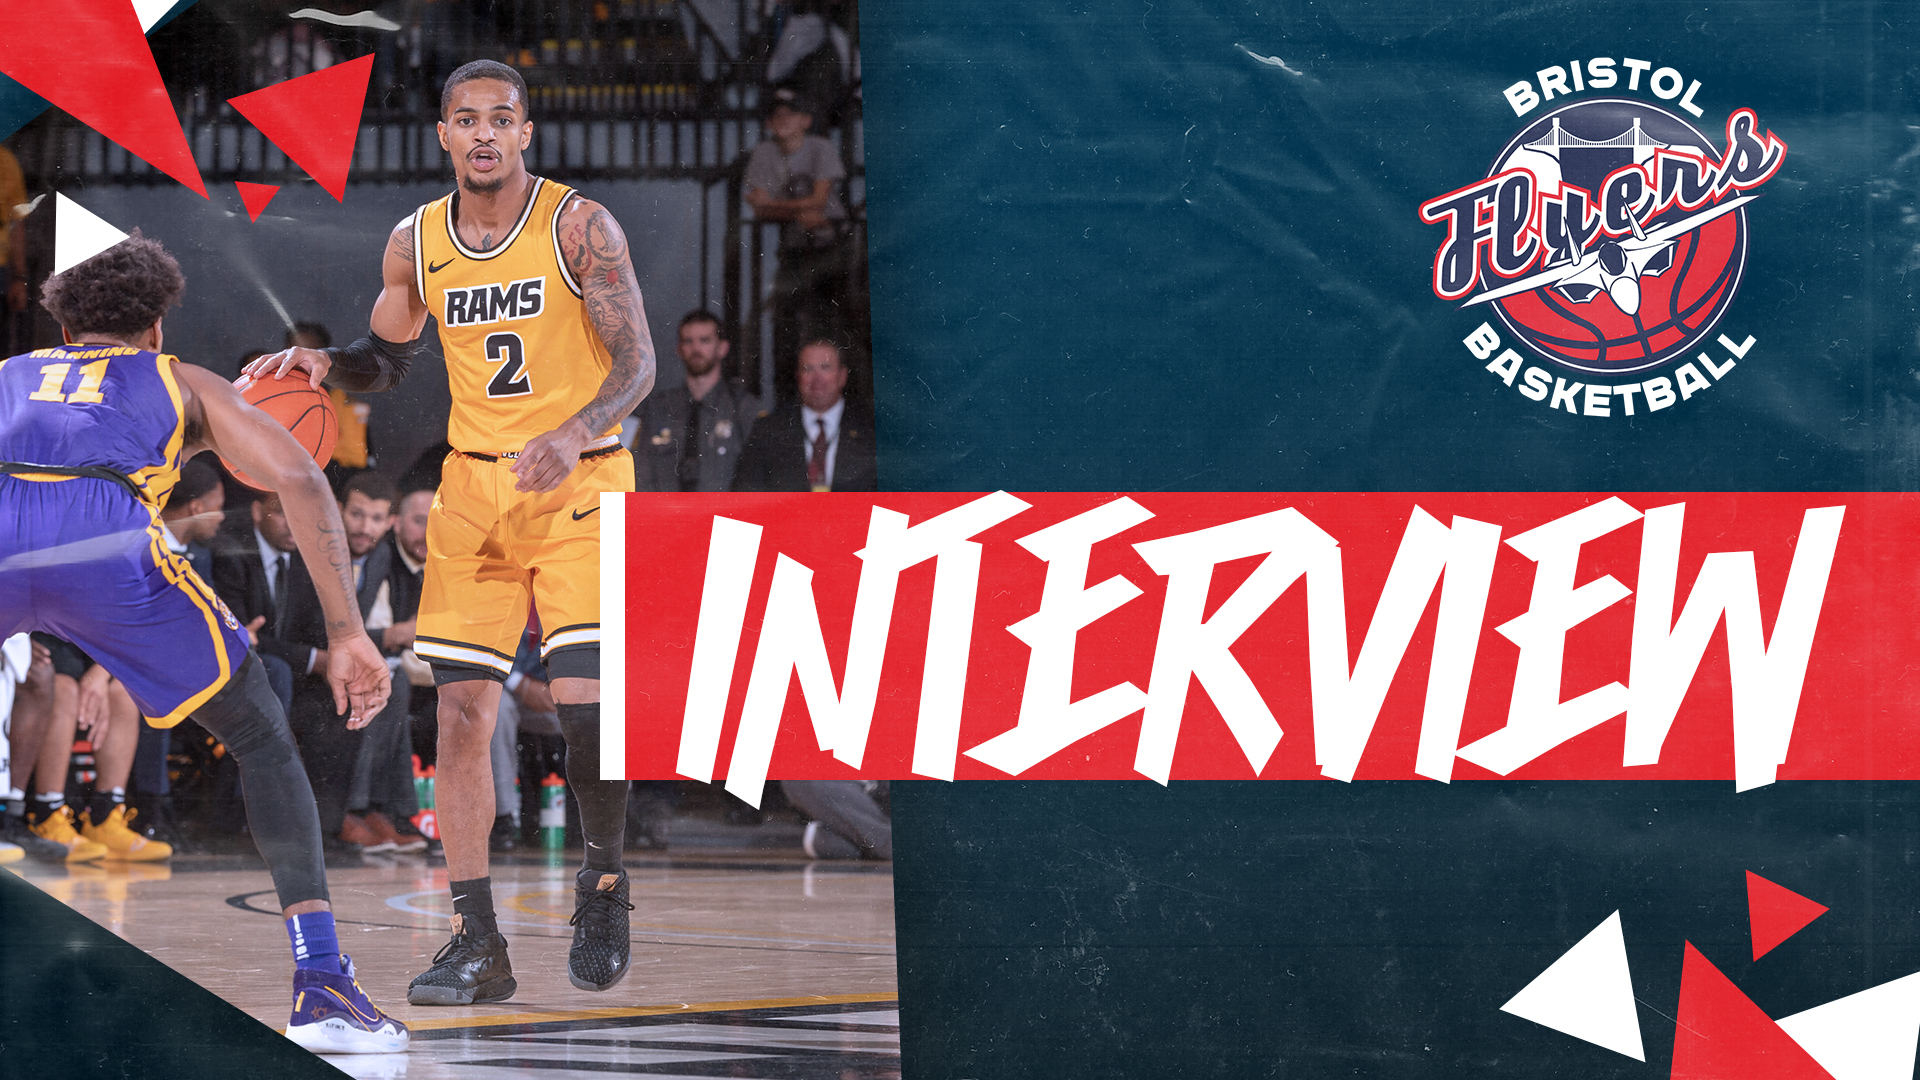 Marcus Evans - The First Interview